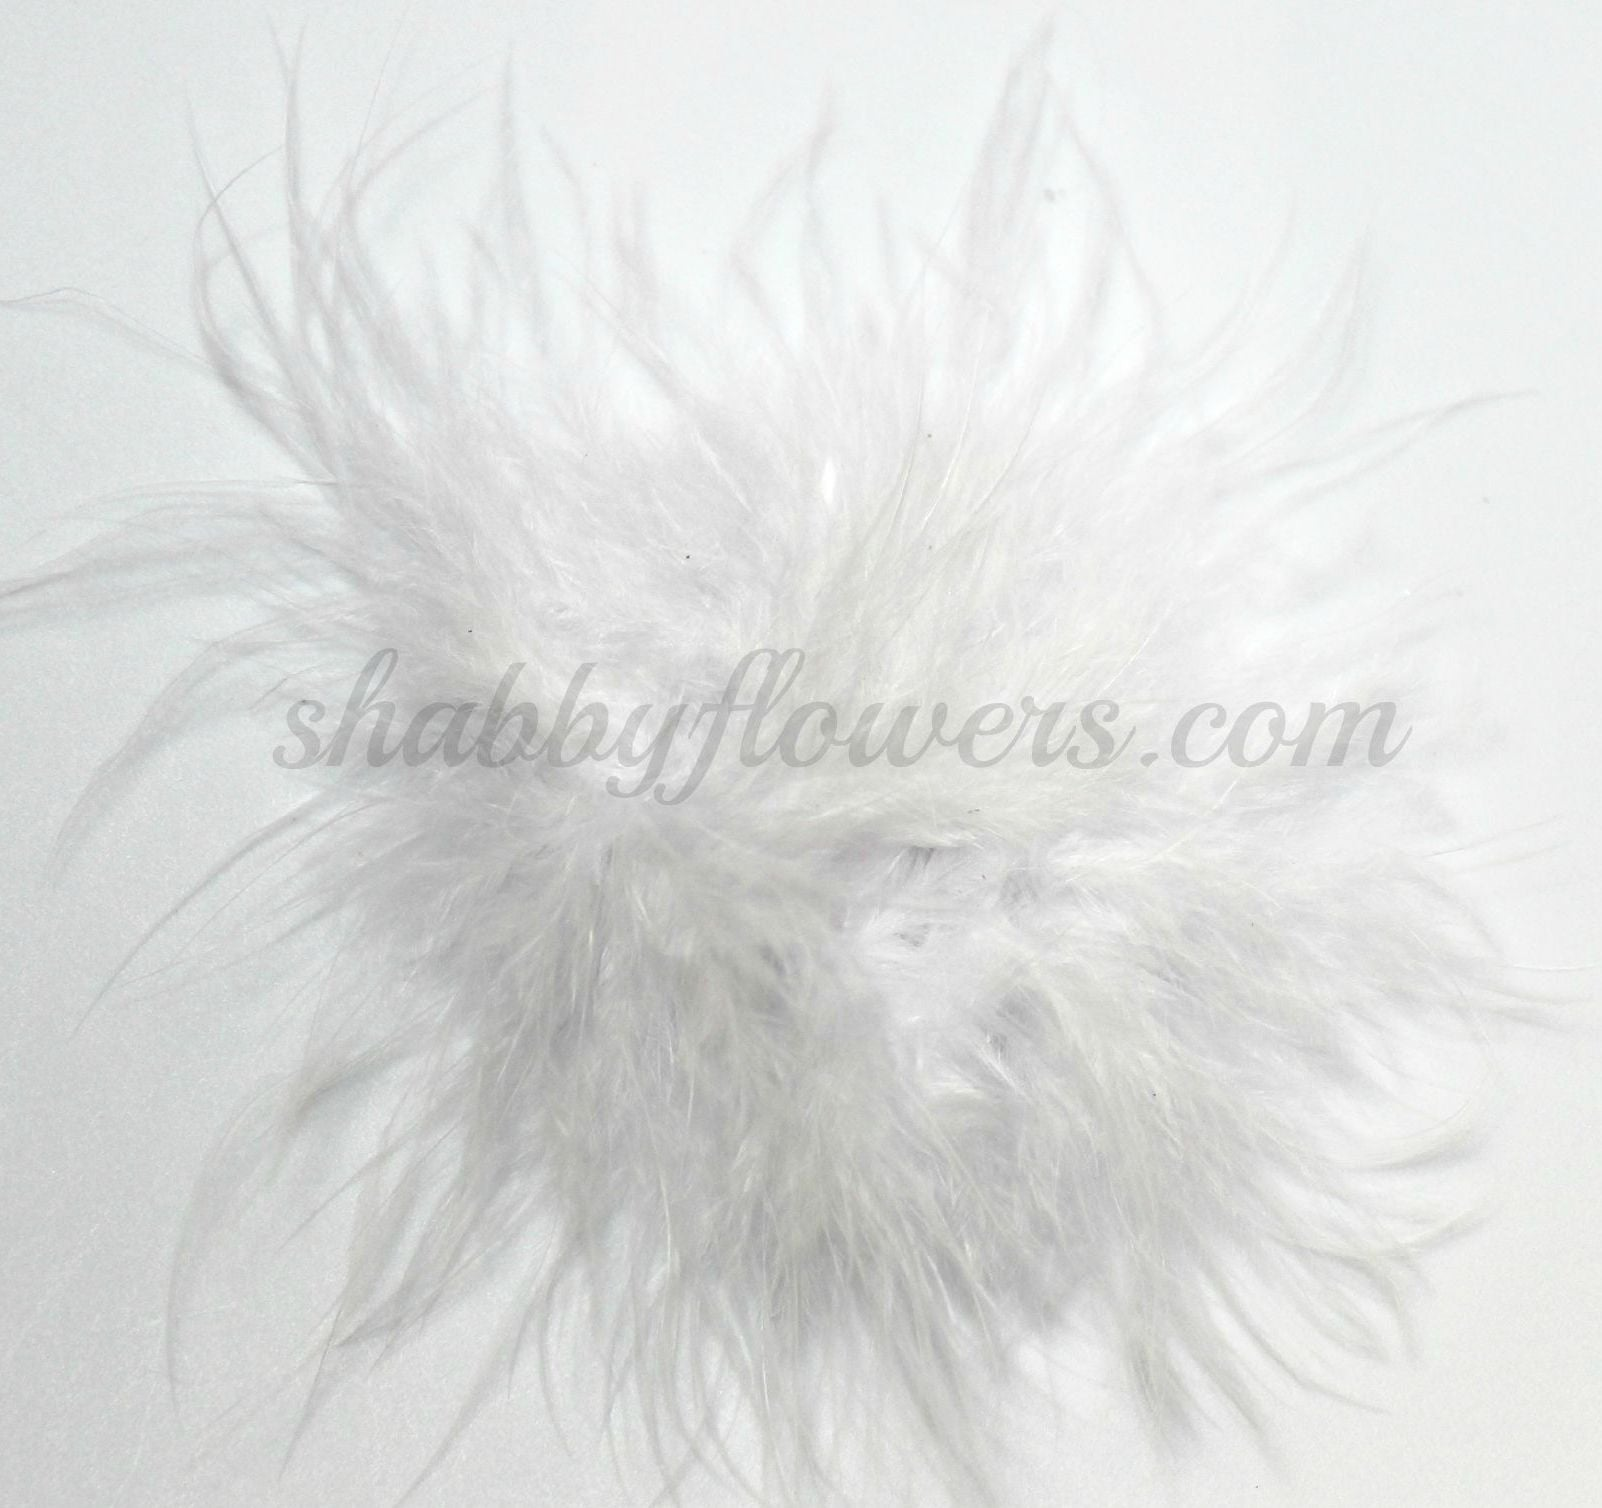 Marabou Feather Puff - White - shabbyflowers.com